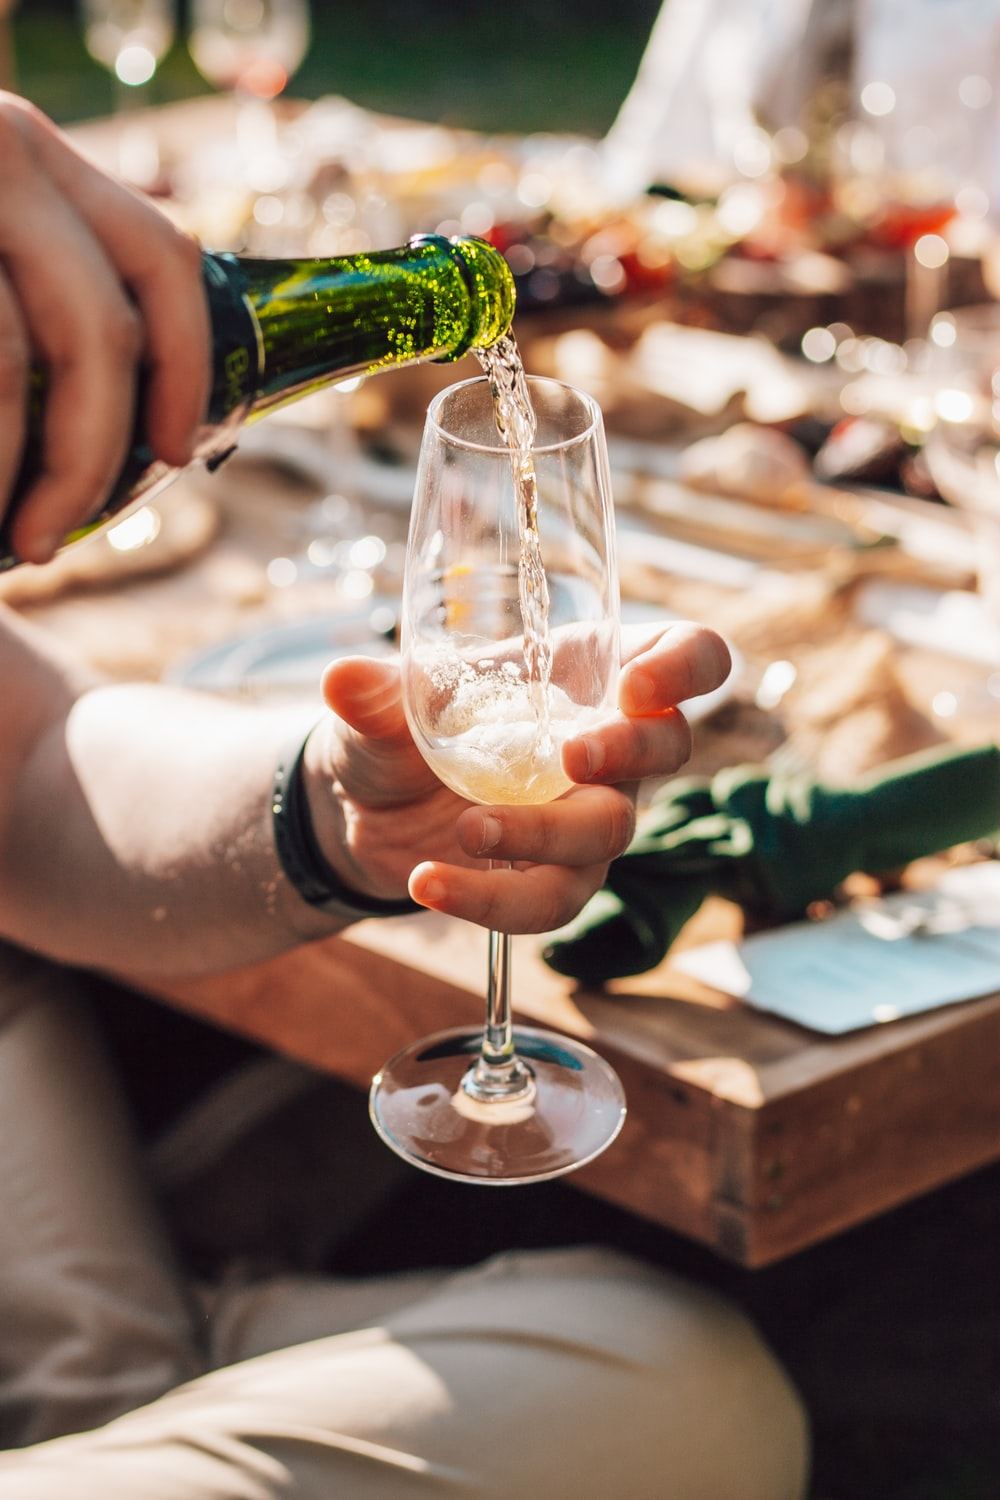 person holding green glass bottle pouring on clear wine glass